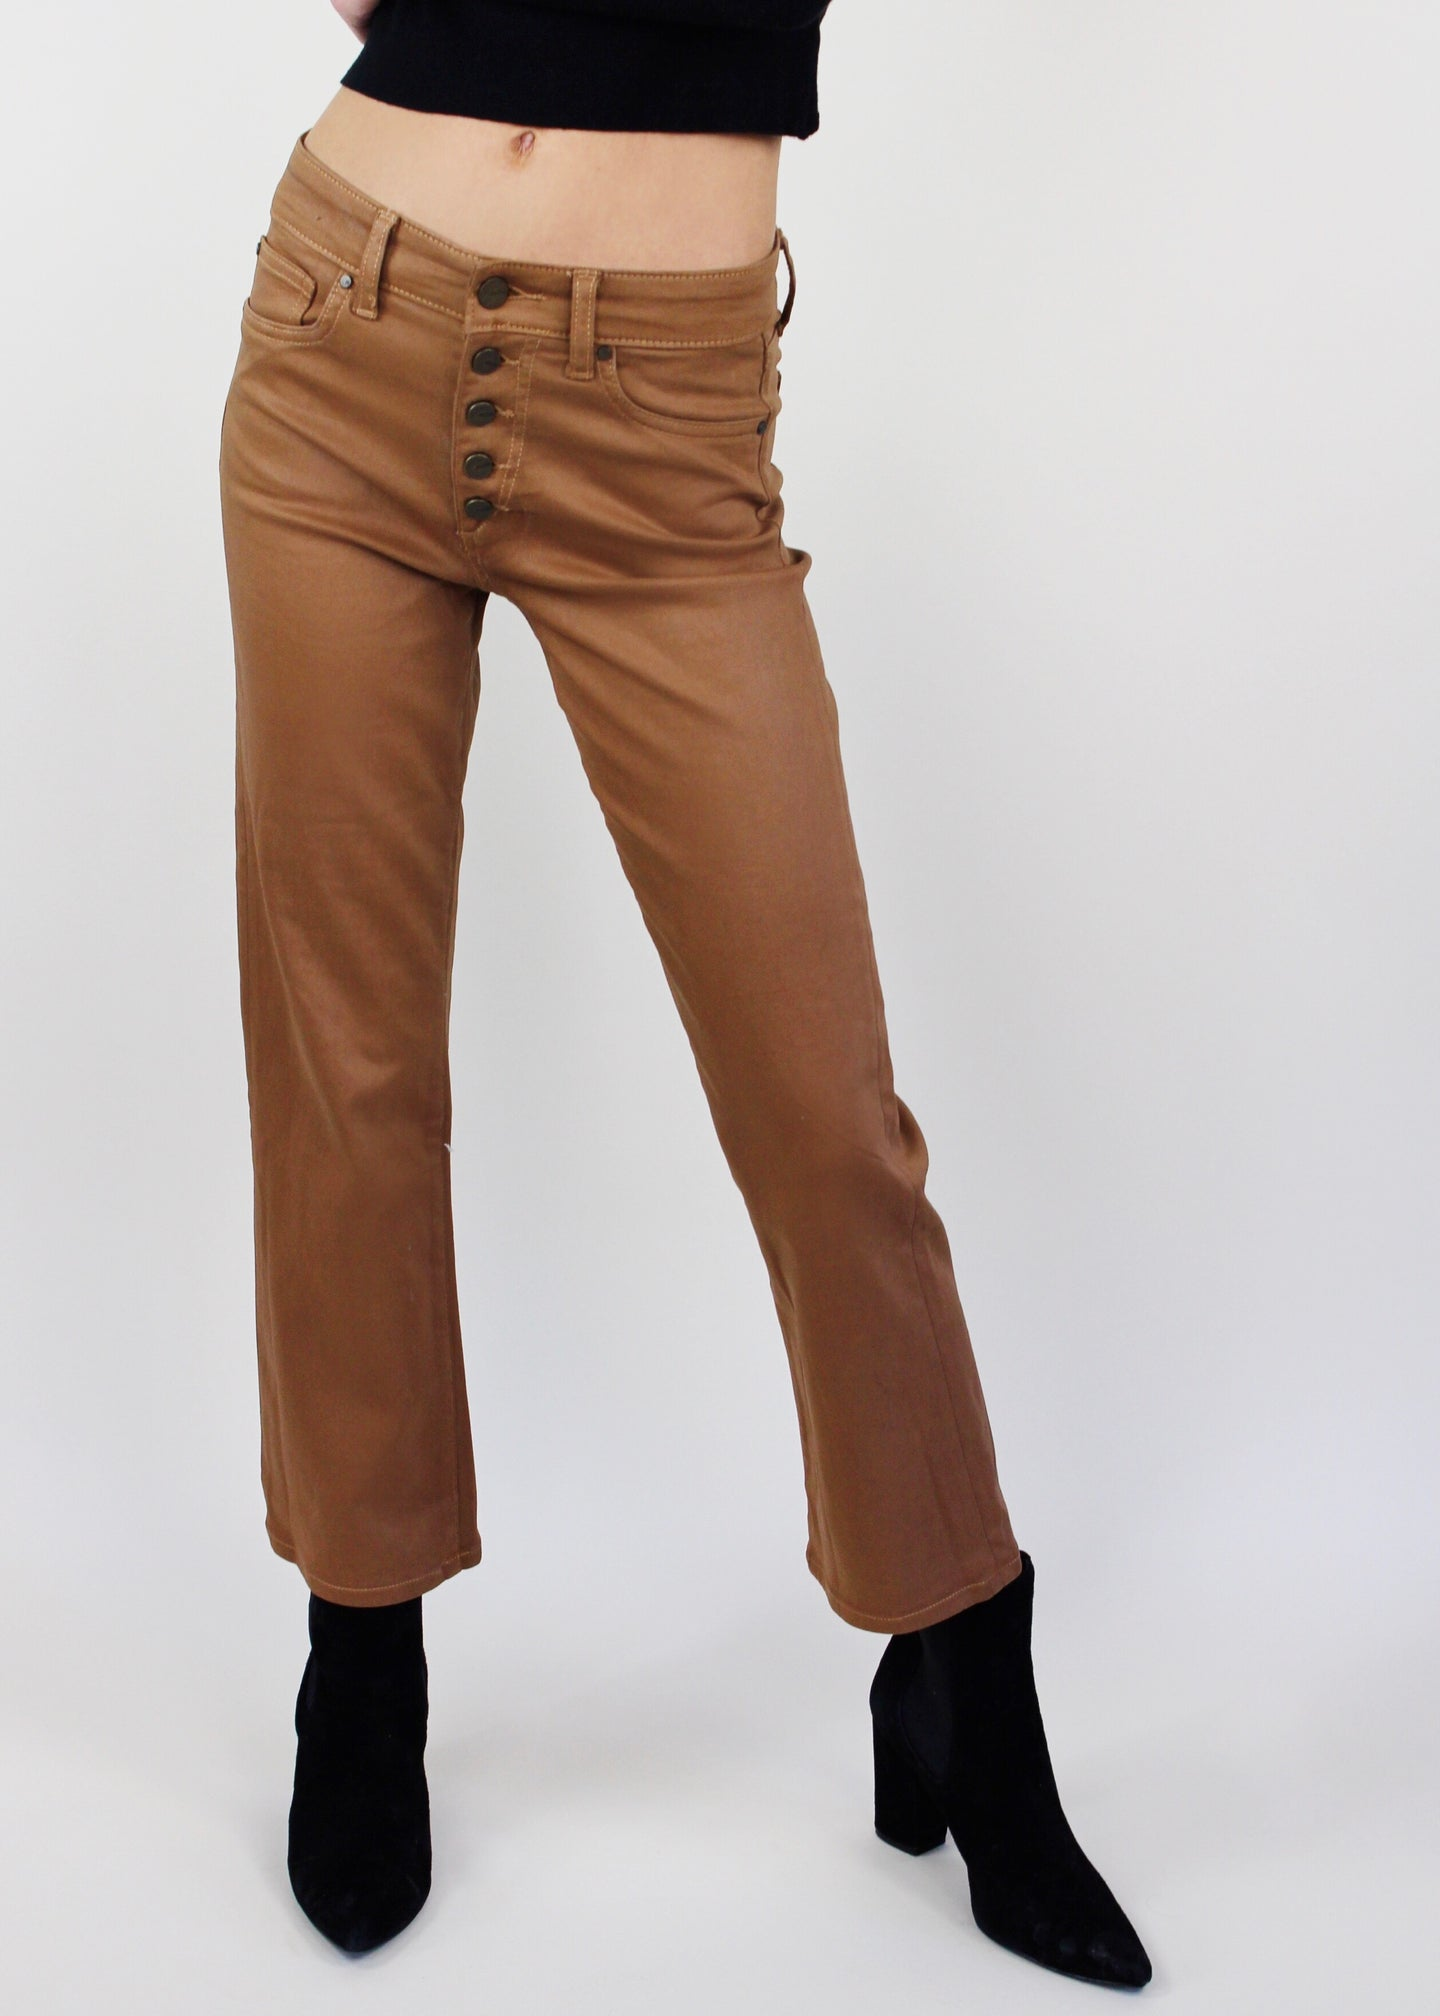 Maple Coated Crop Flare Jeans